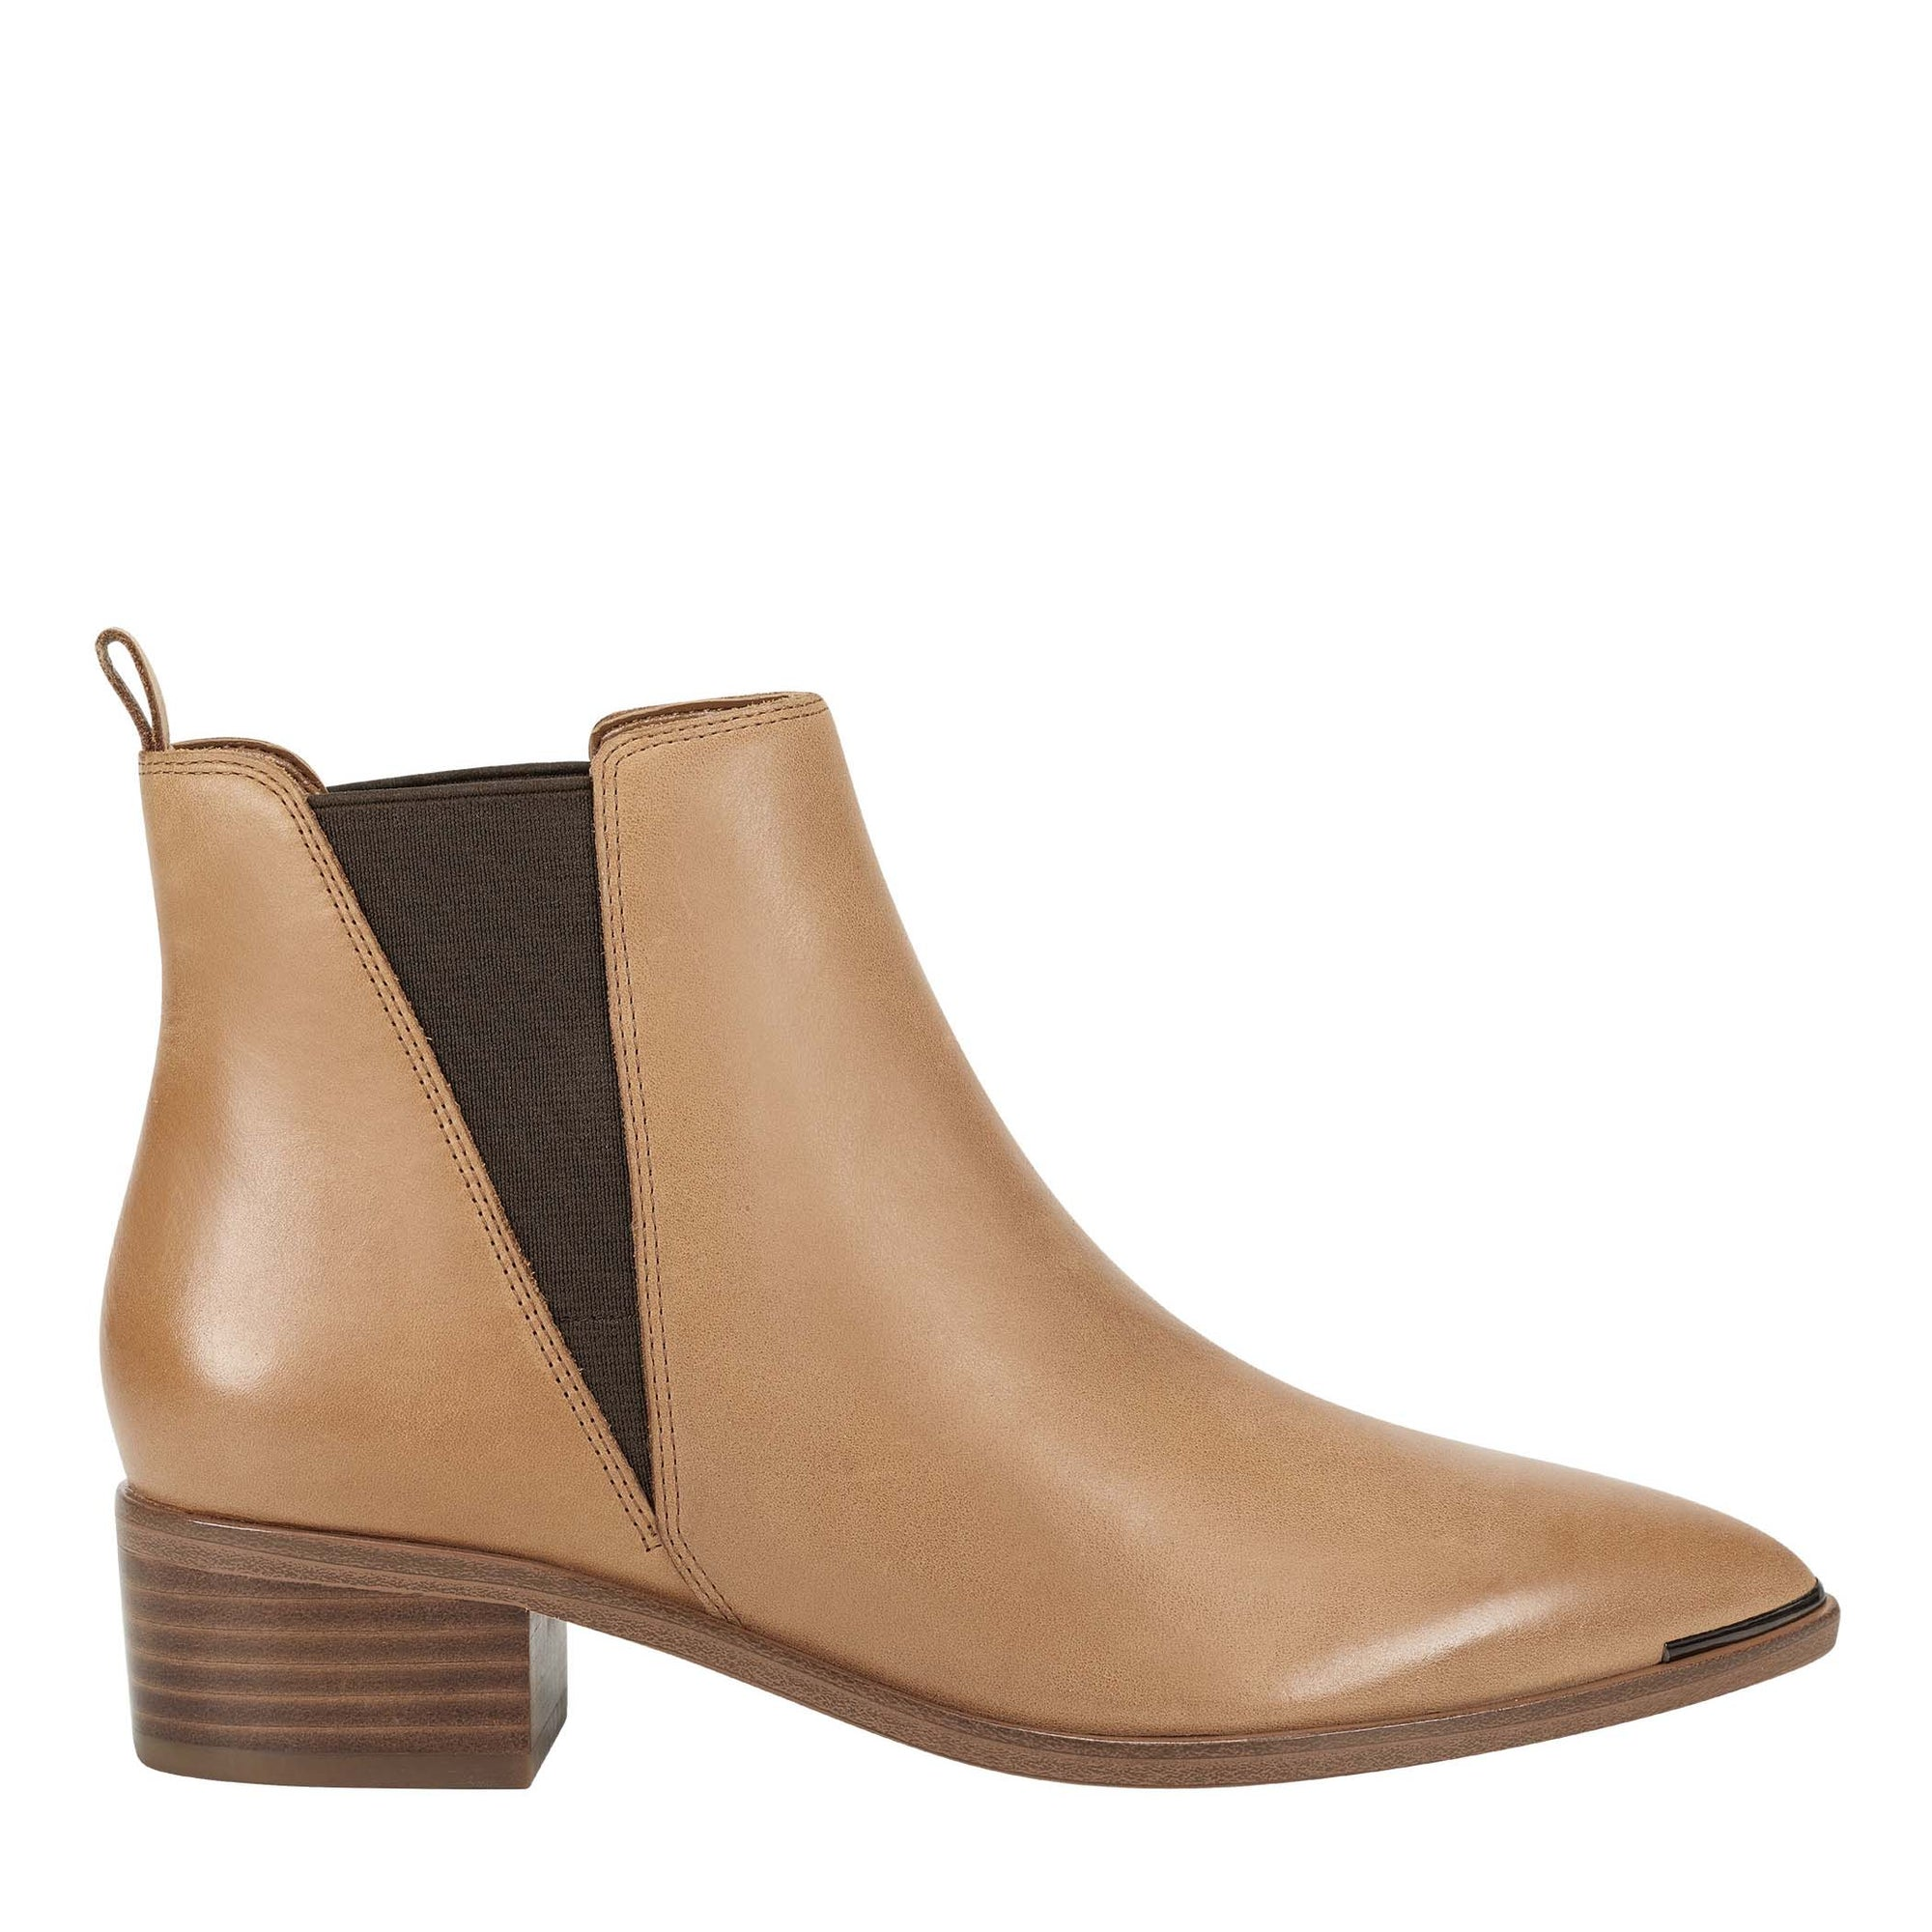 yale-pointy-toe-chelsea-bootie-in-brown-leather